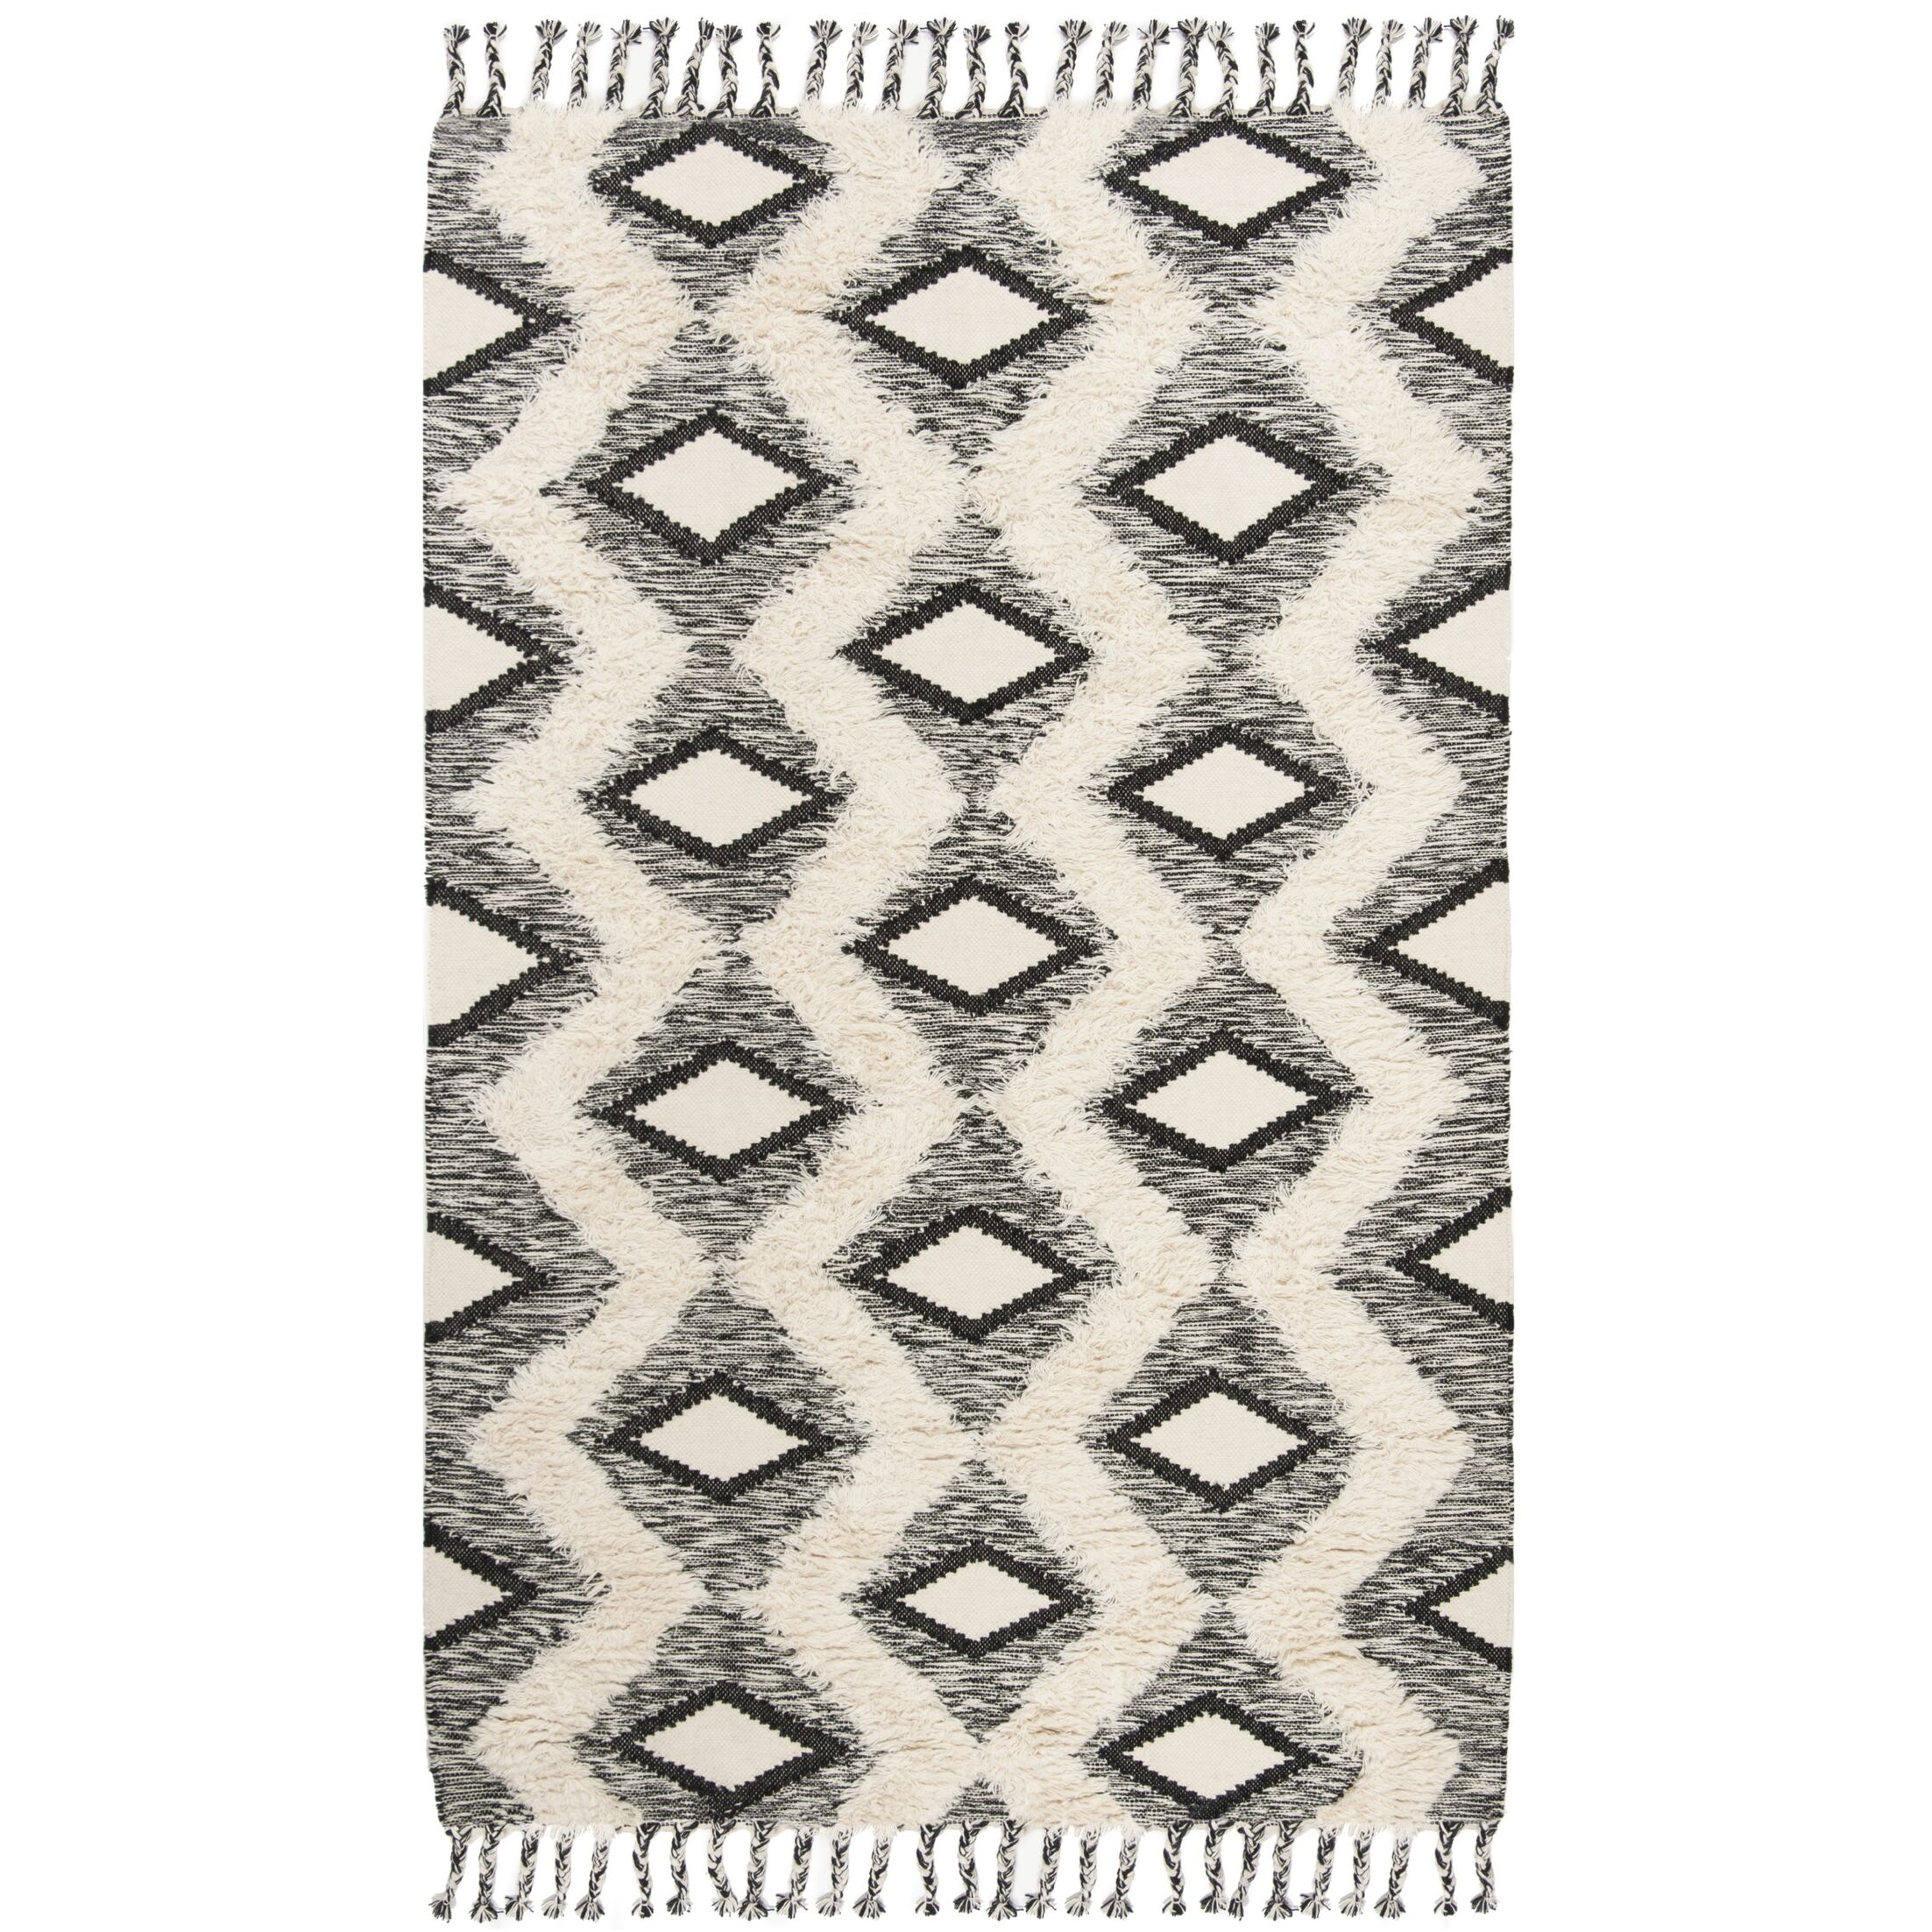 Albertina Hand Knotted Wool Beige/Black Area Rug Rug Size: Rectangle 4' x 6'